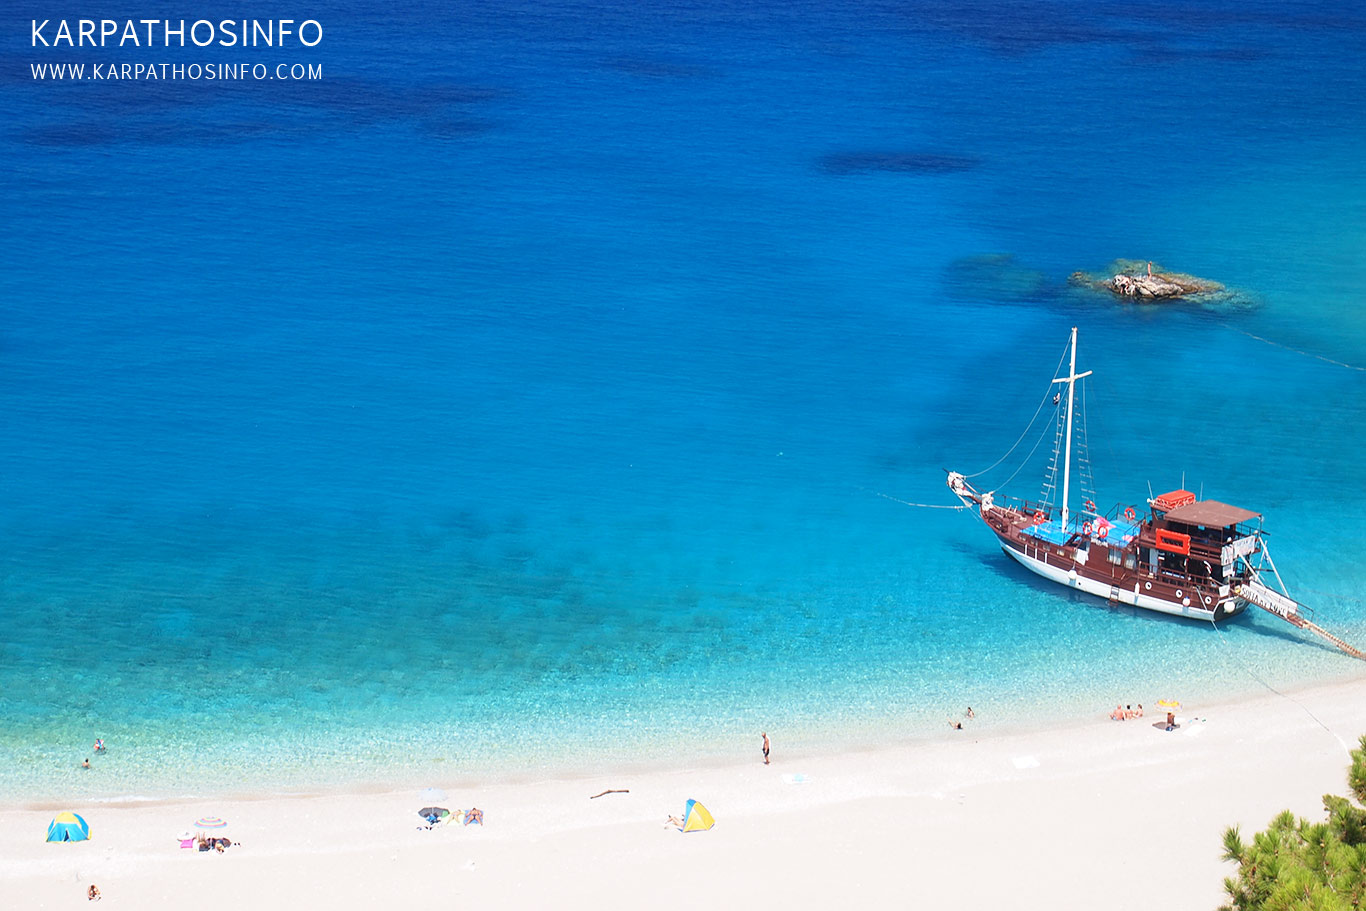 The best beaches in Karpathos island, Greece